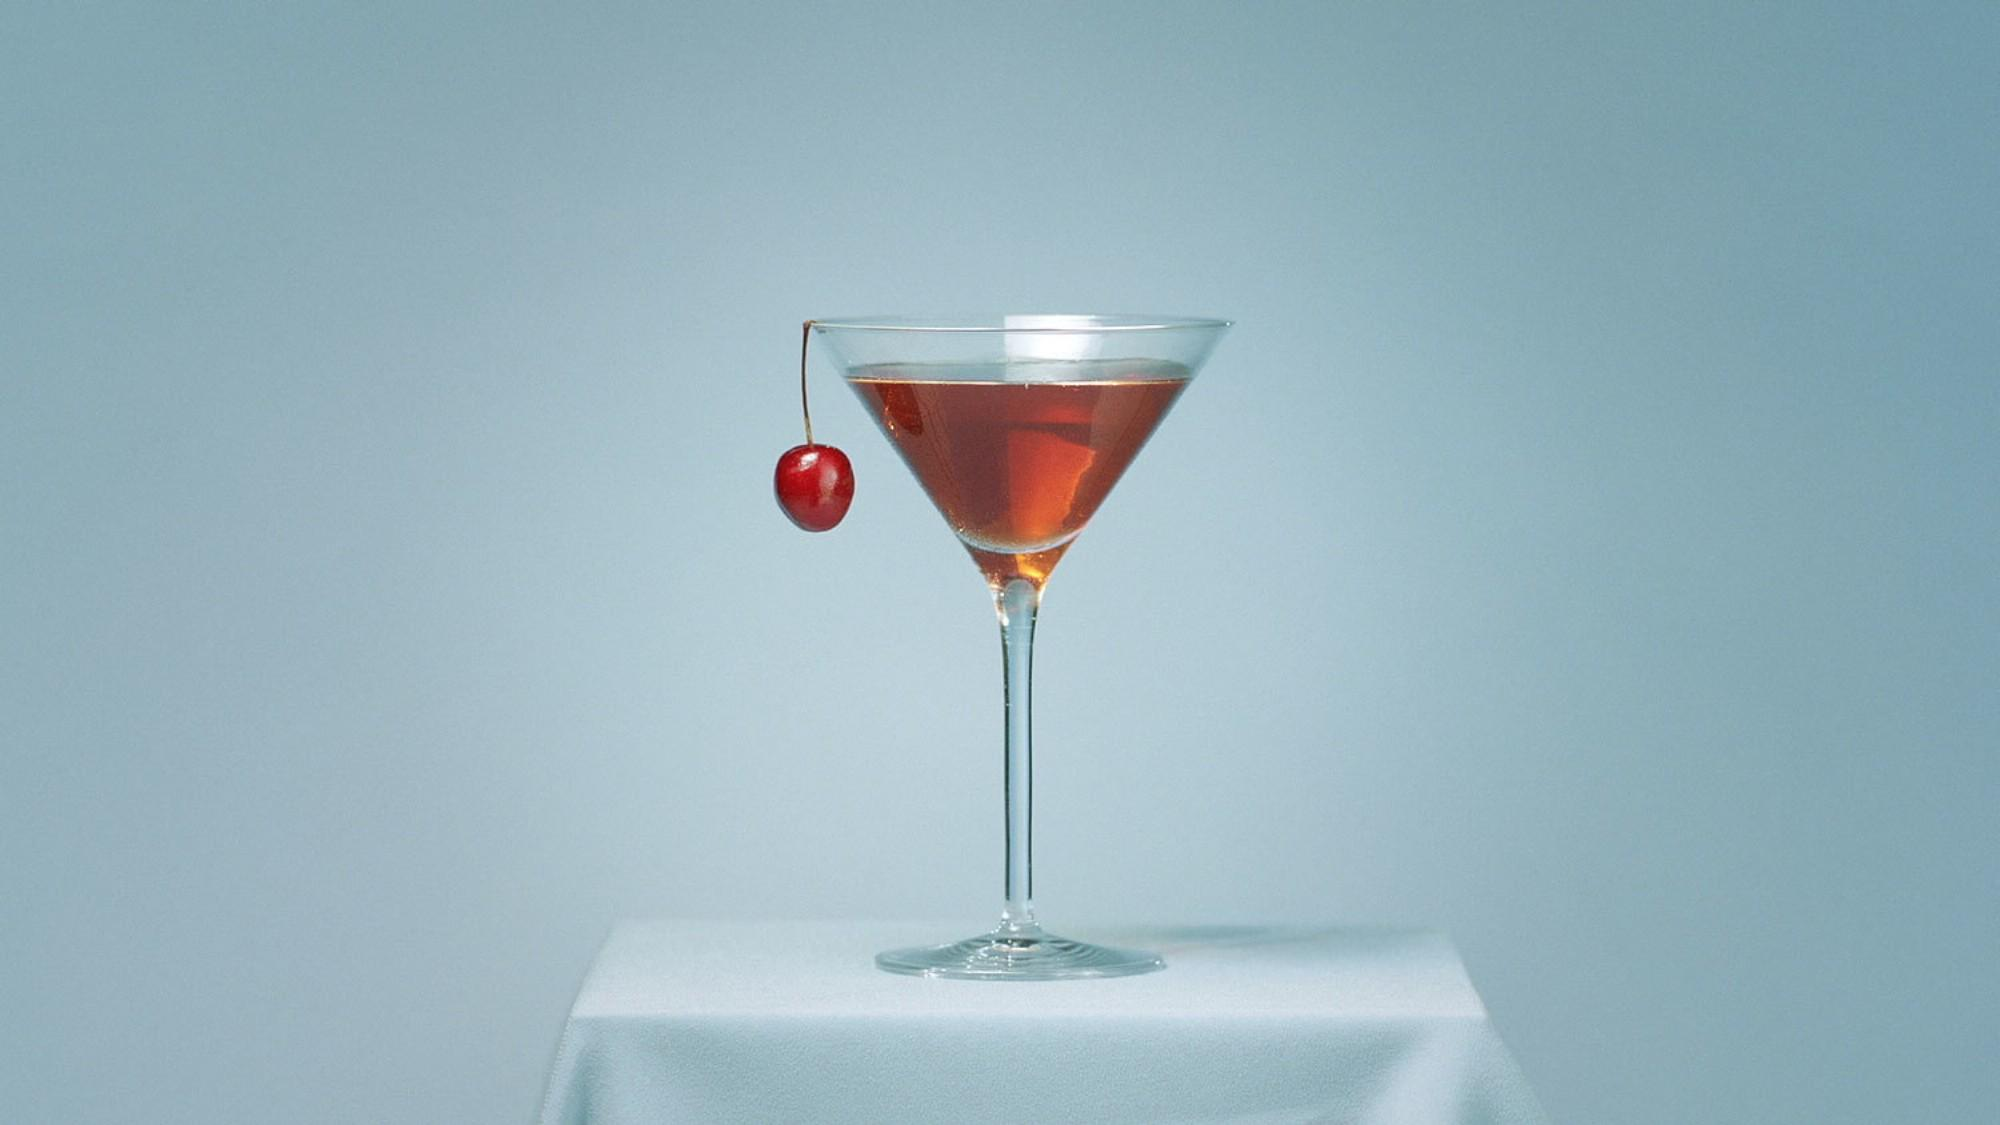 Time for a night cap? Mix the perfect Manhatten with i-D: http://t.co/2R0iN3rc8Z http://t.co/9rzpZjOzTN